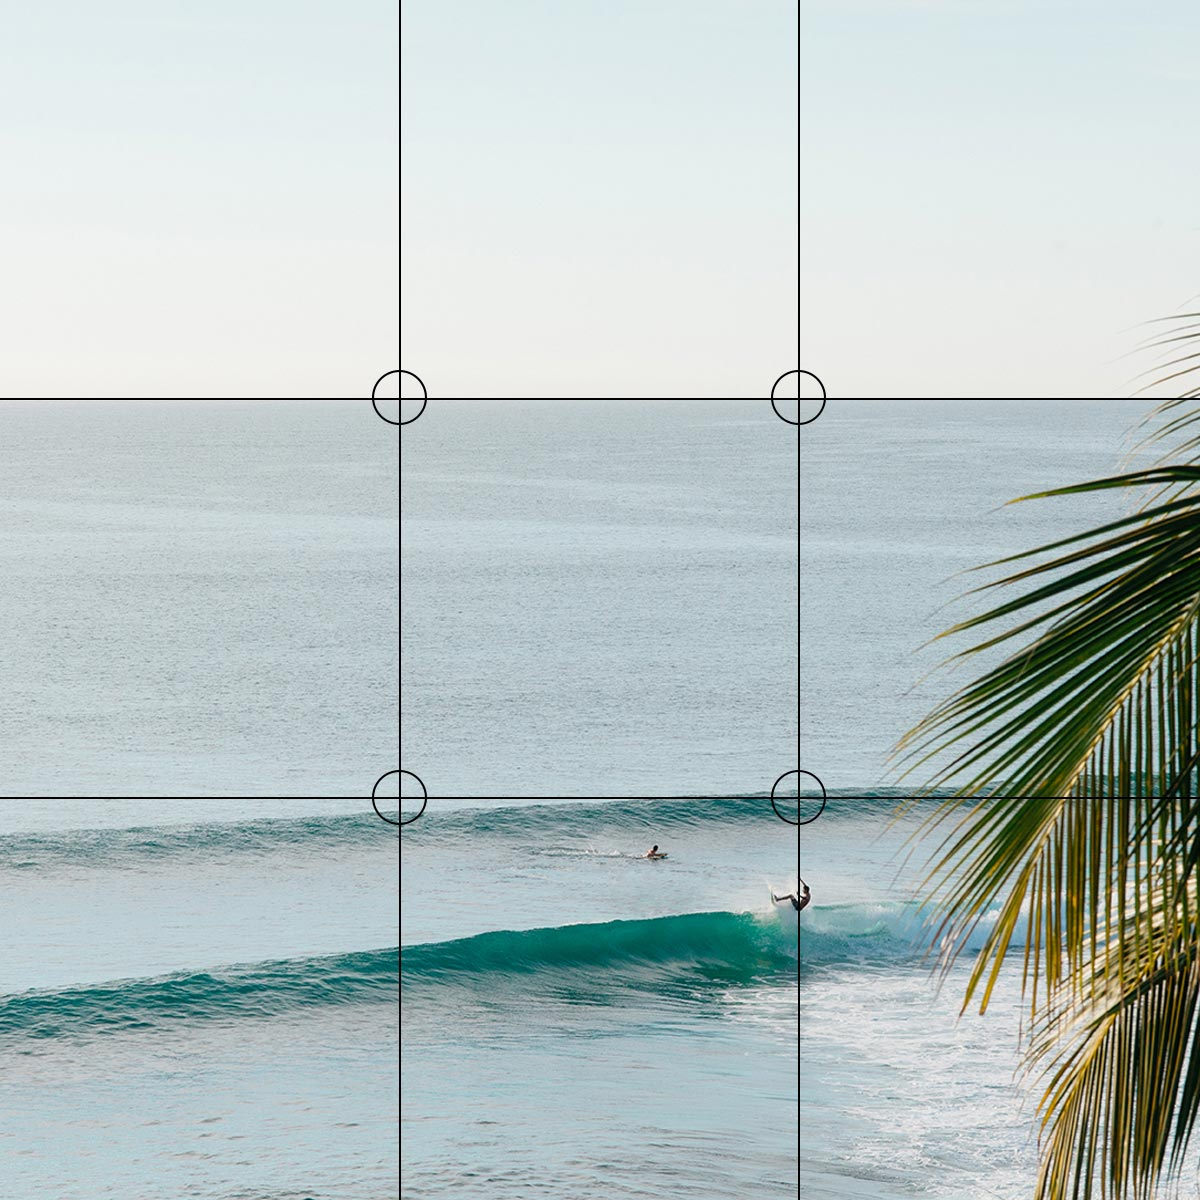 Why Does the Rule of Thirds Work? : Digital Photo Secrets Better photographic composition - beyond the rule of thirds